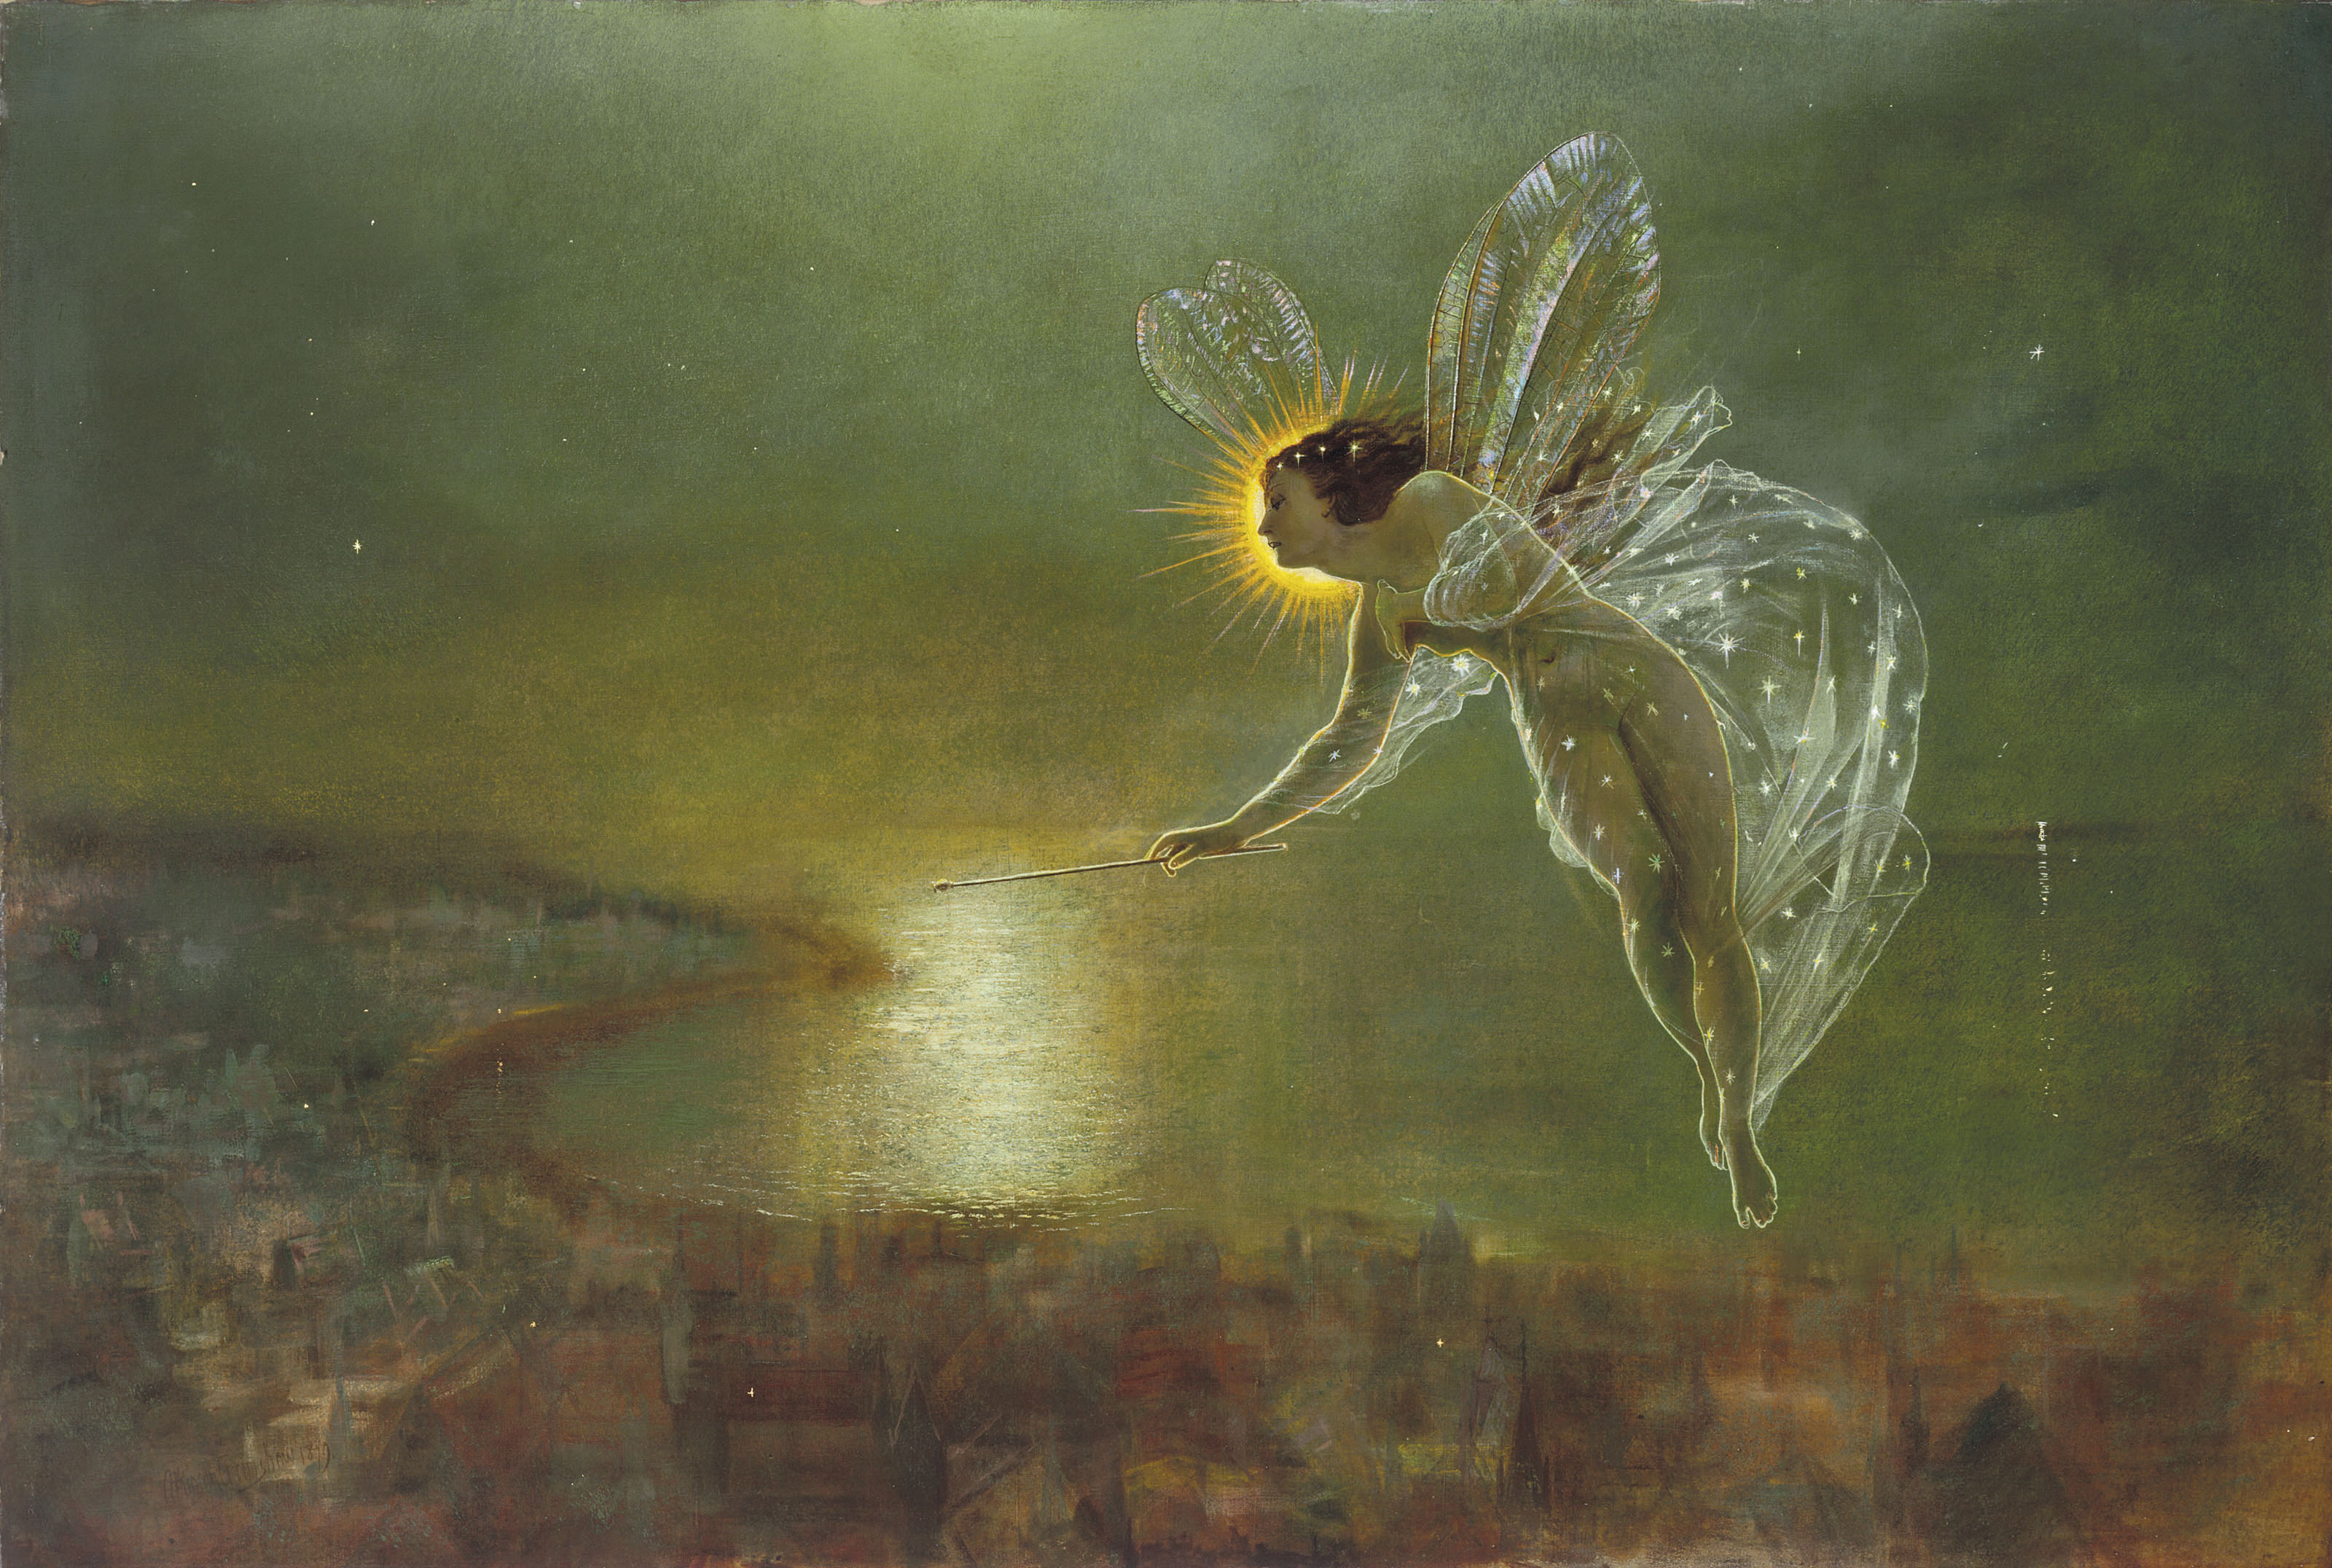 John_Atkinson_Grimshaw_-_Spirit_of_the_Night.jpg